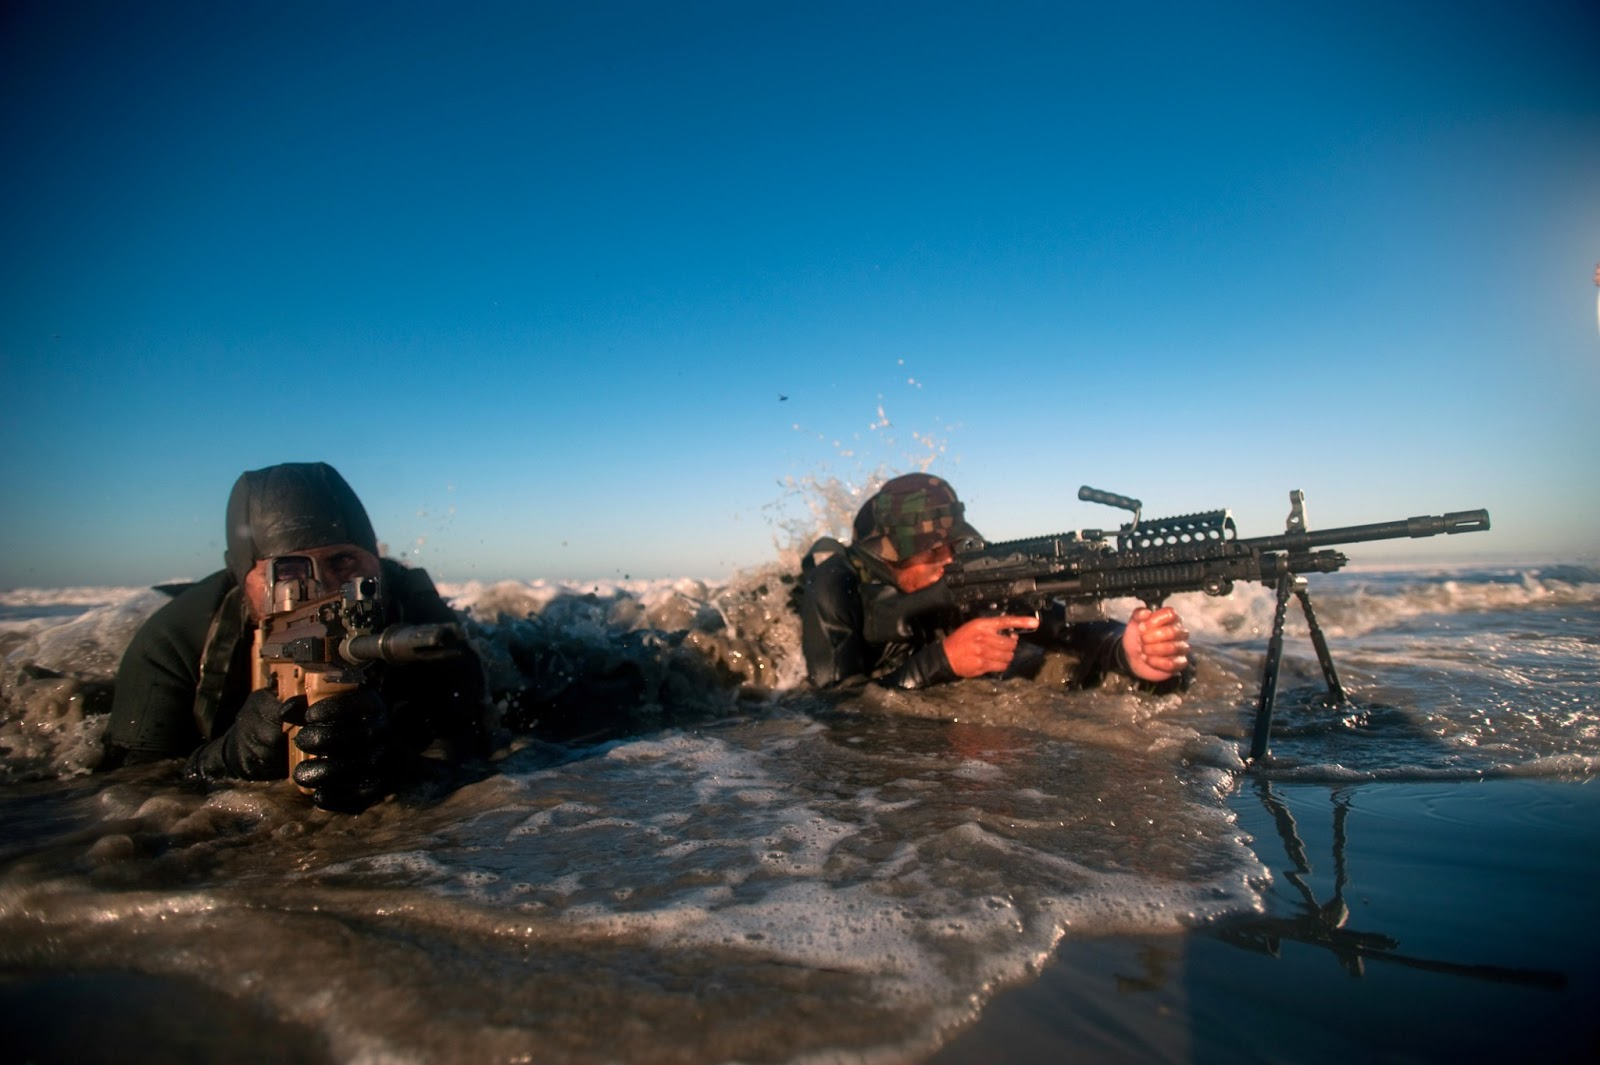 seal-swcc-dot-com-navy-seal-photo-download-000238.jpg